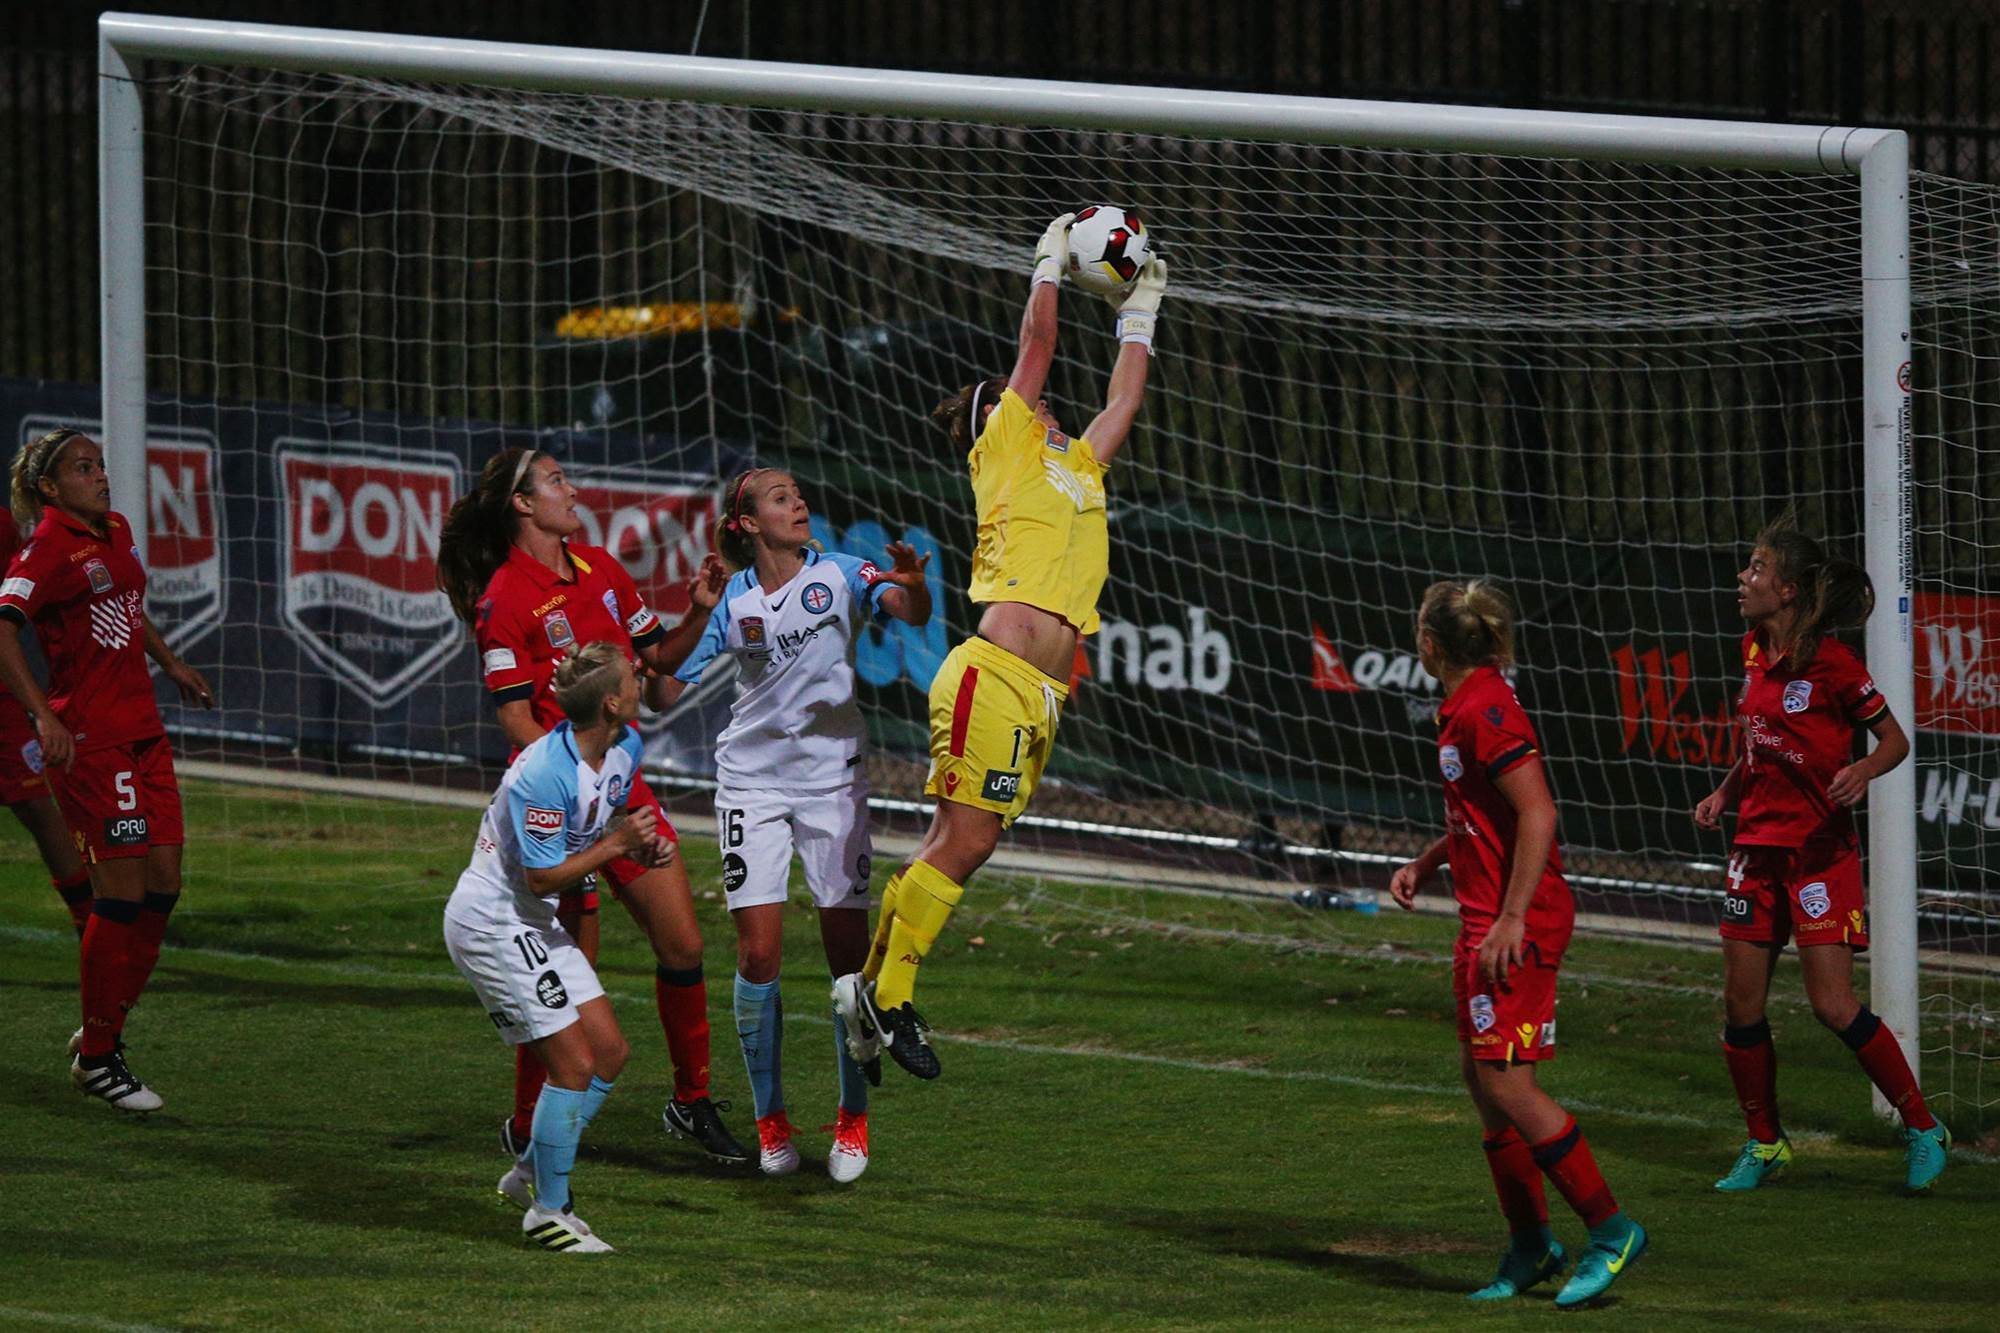 W-League Round 10 pic special